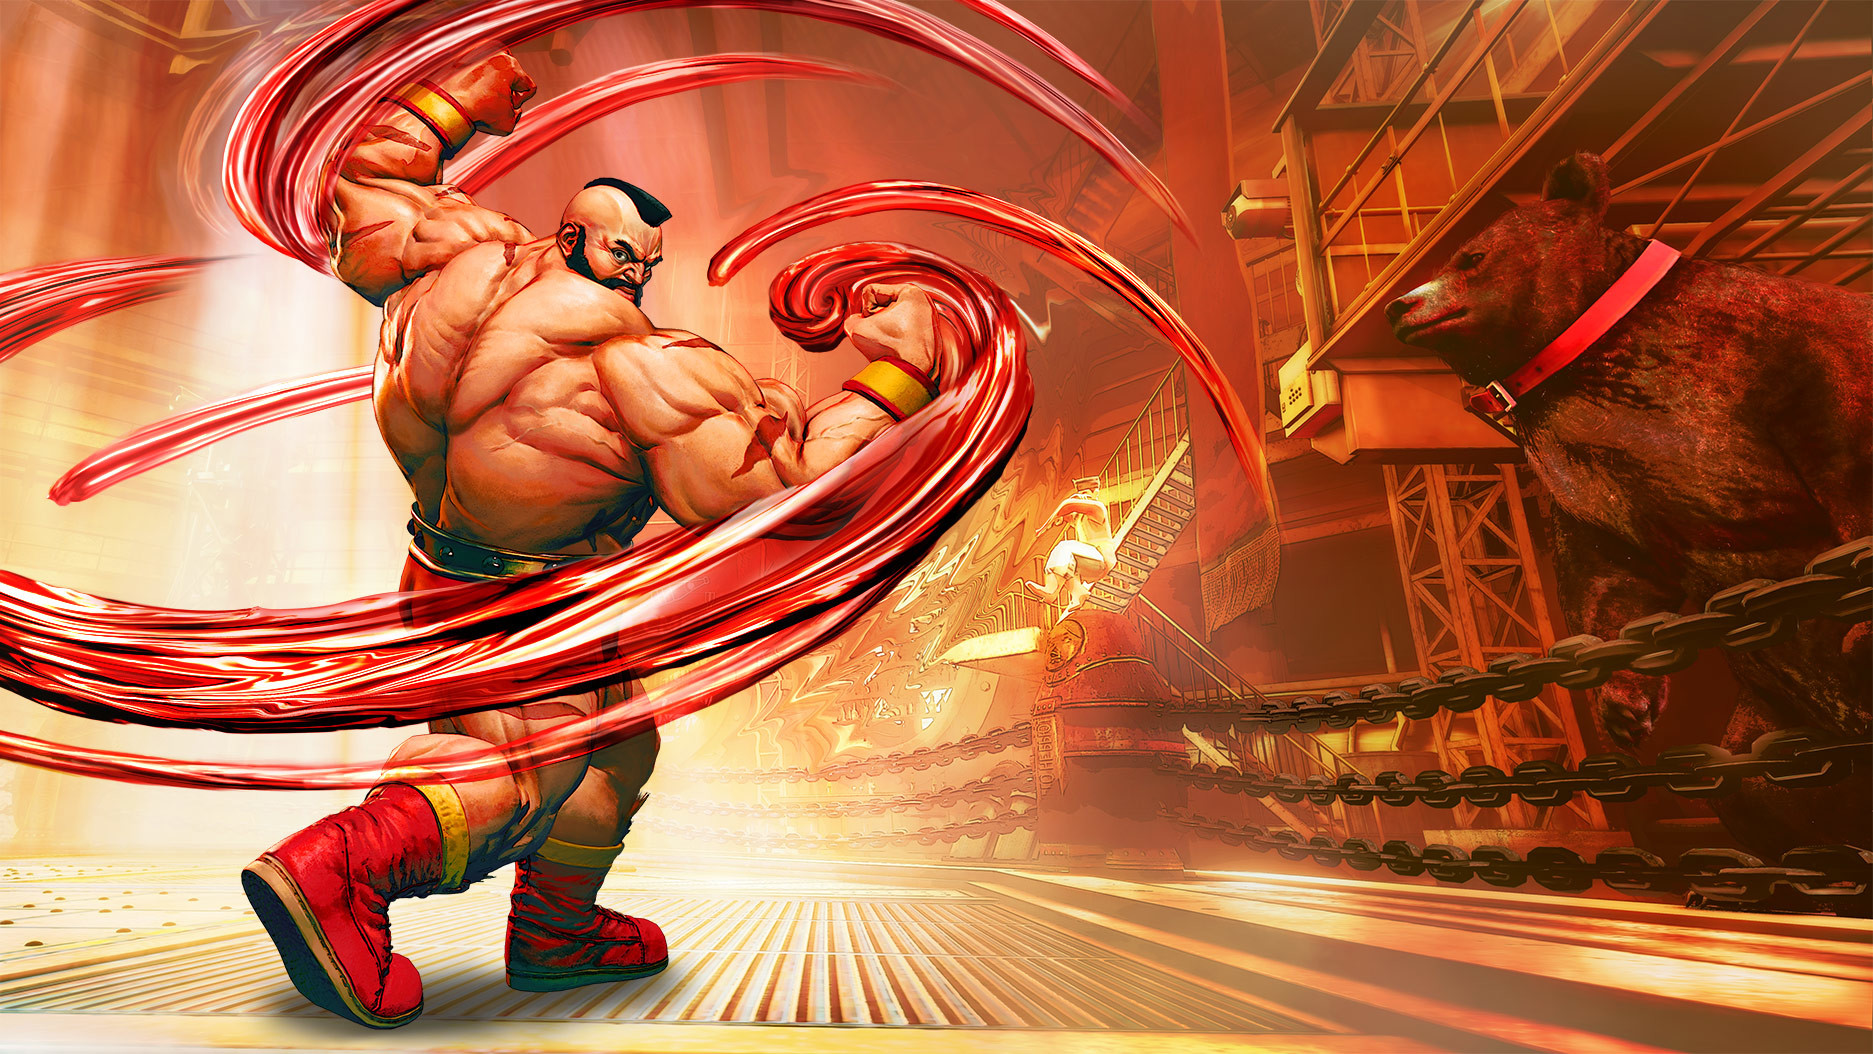 David giraud zangief sf5 artwork